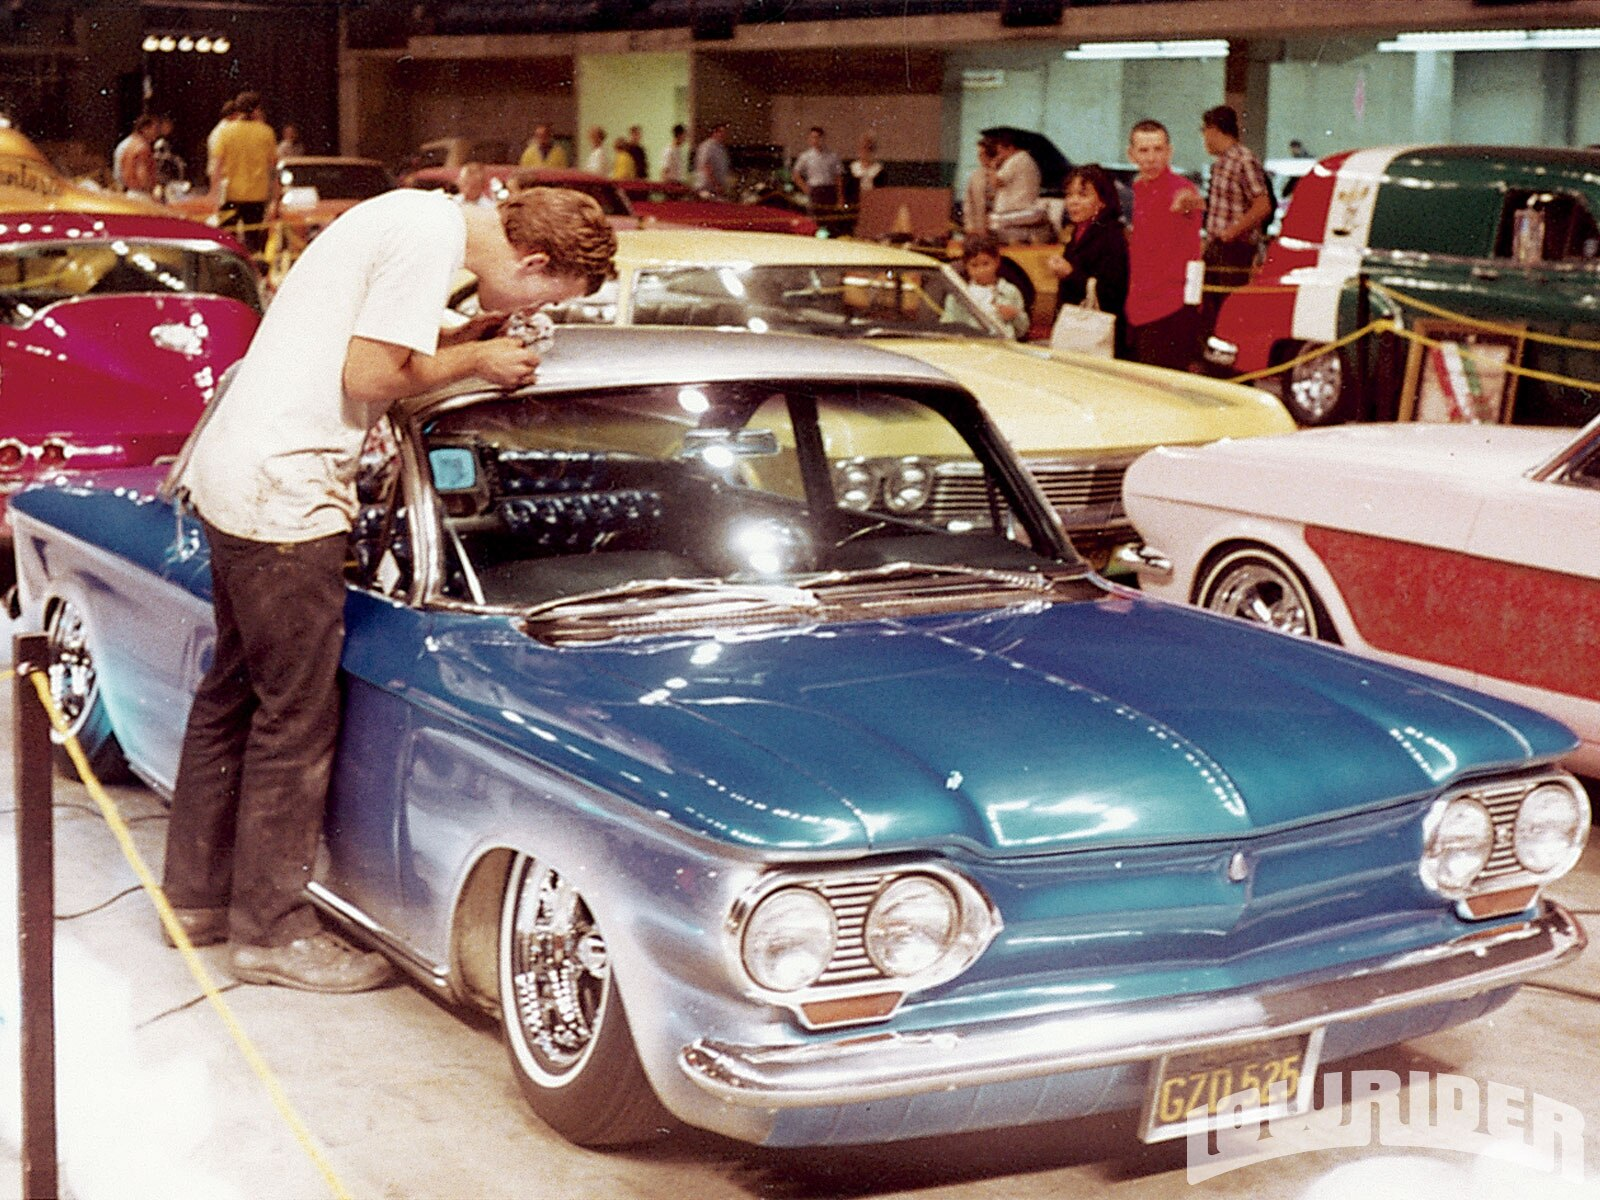 Chevy Vin Decoder >> 1968 Buick Riviera and Other Vintage Rides - Custom Lowriders - Lowrider Magazine